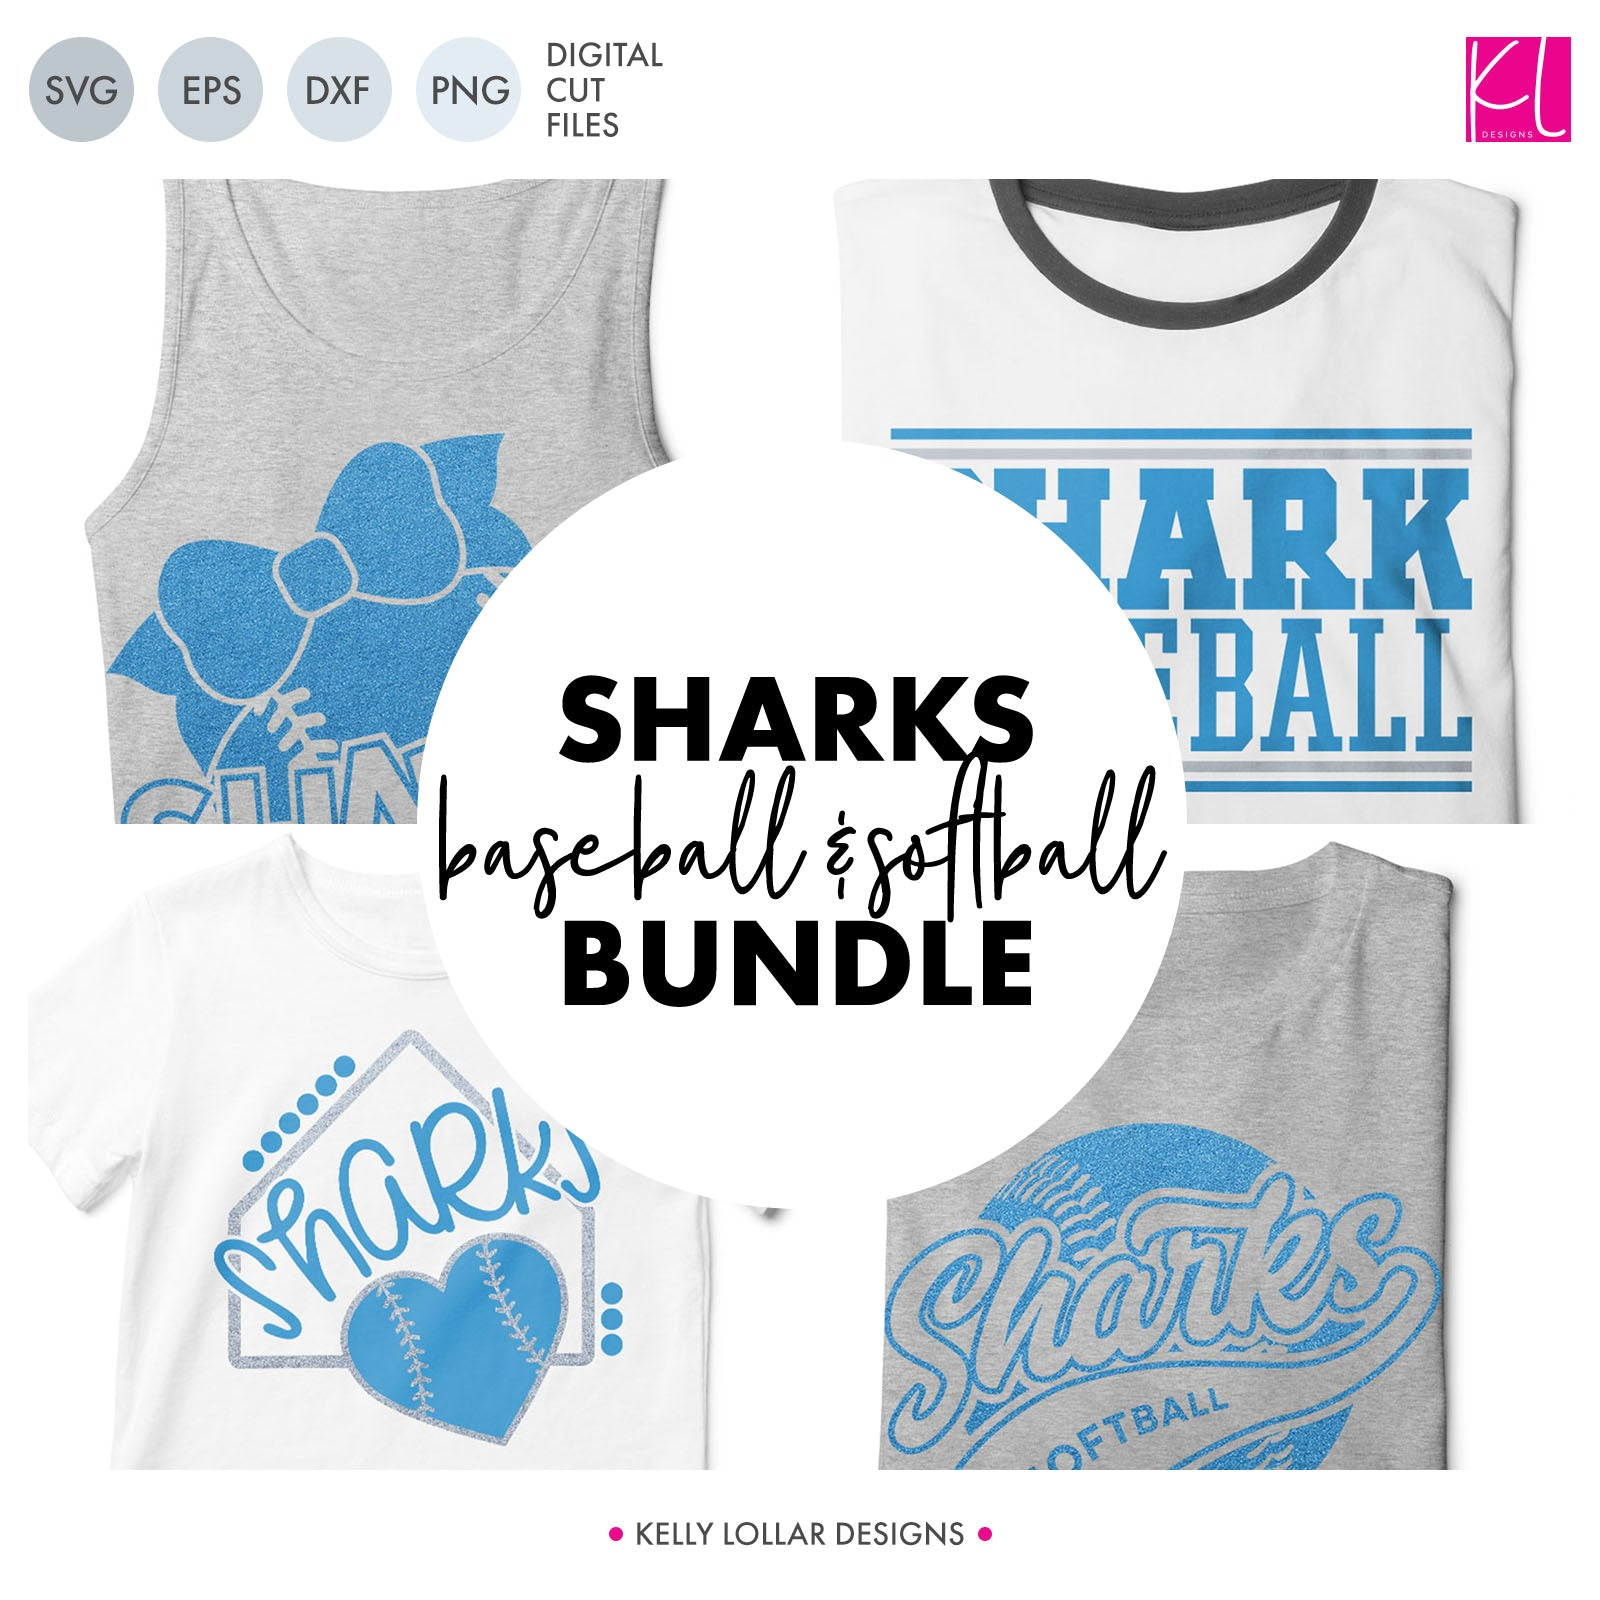 Sharks Baseball & Softball Bundle | SVG DXF EPS PNG Cut Files It's baseball and softball season, so Shark crafter know what that means ... new spirit shirts! This fifteen-piece bundle includes a little something for everyone - from girly and cute